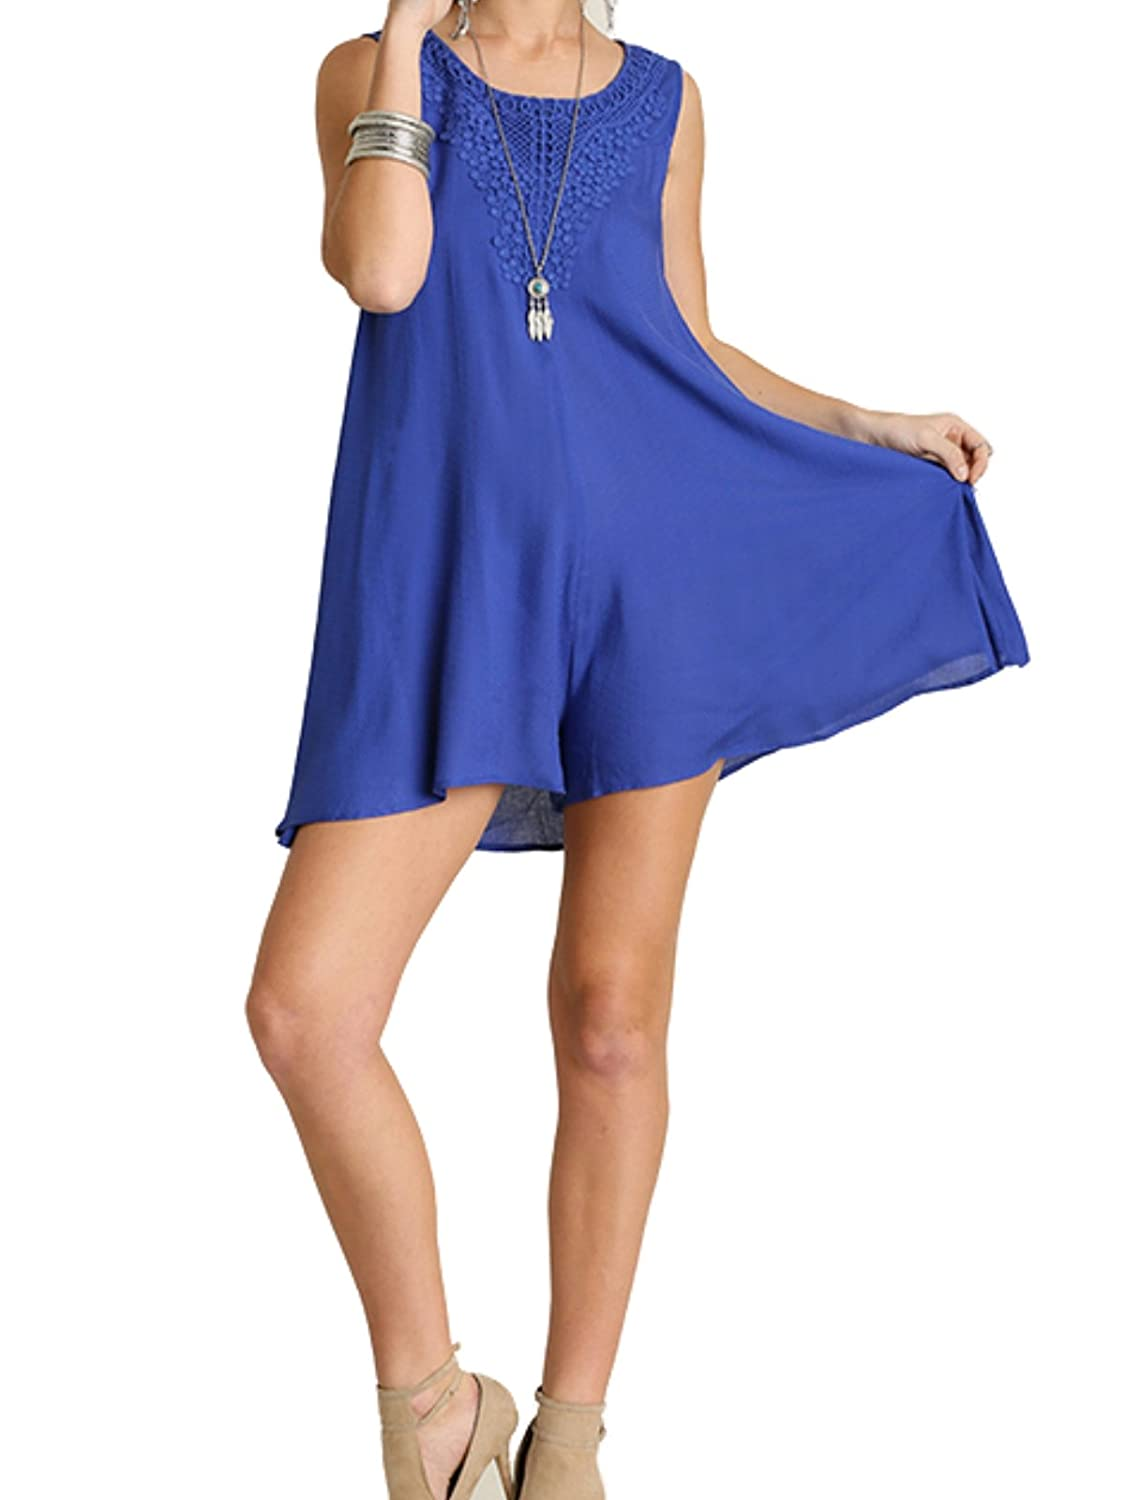 UMGEE USA Women's Sleeveless Romper with Lace Detail Cobalt